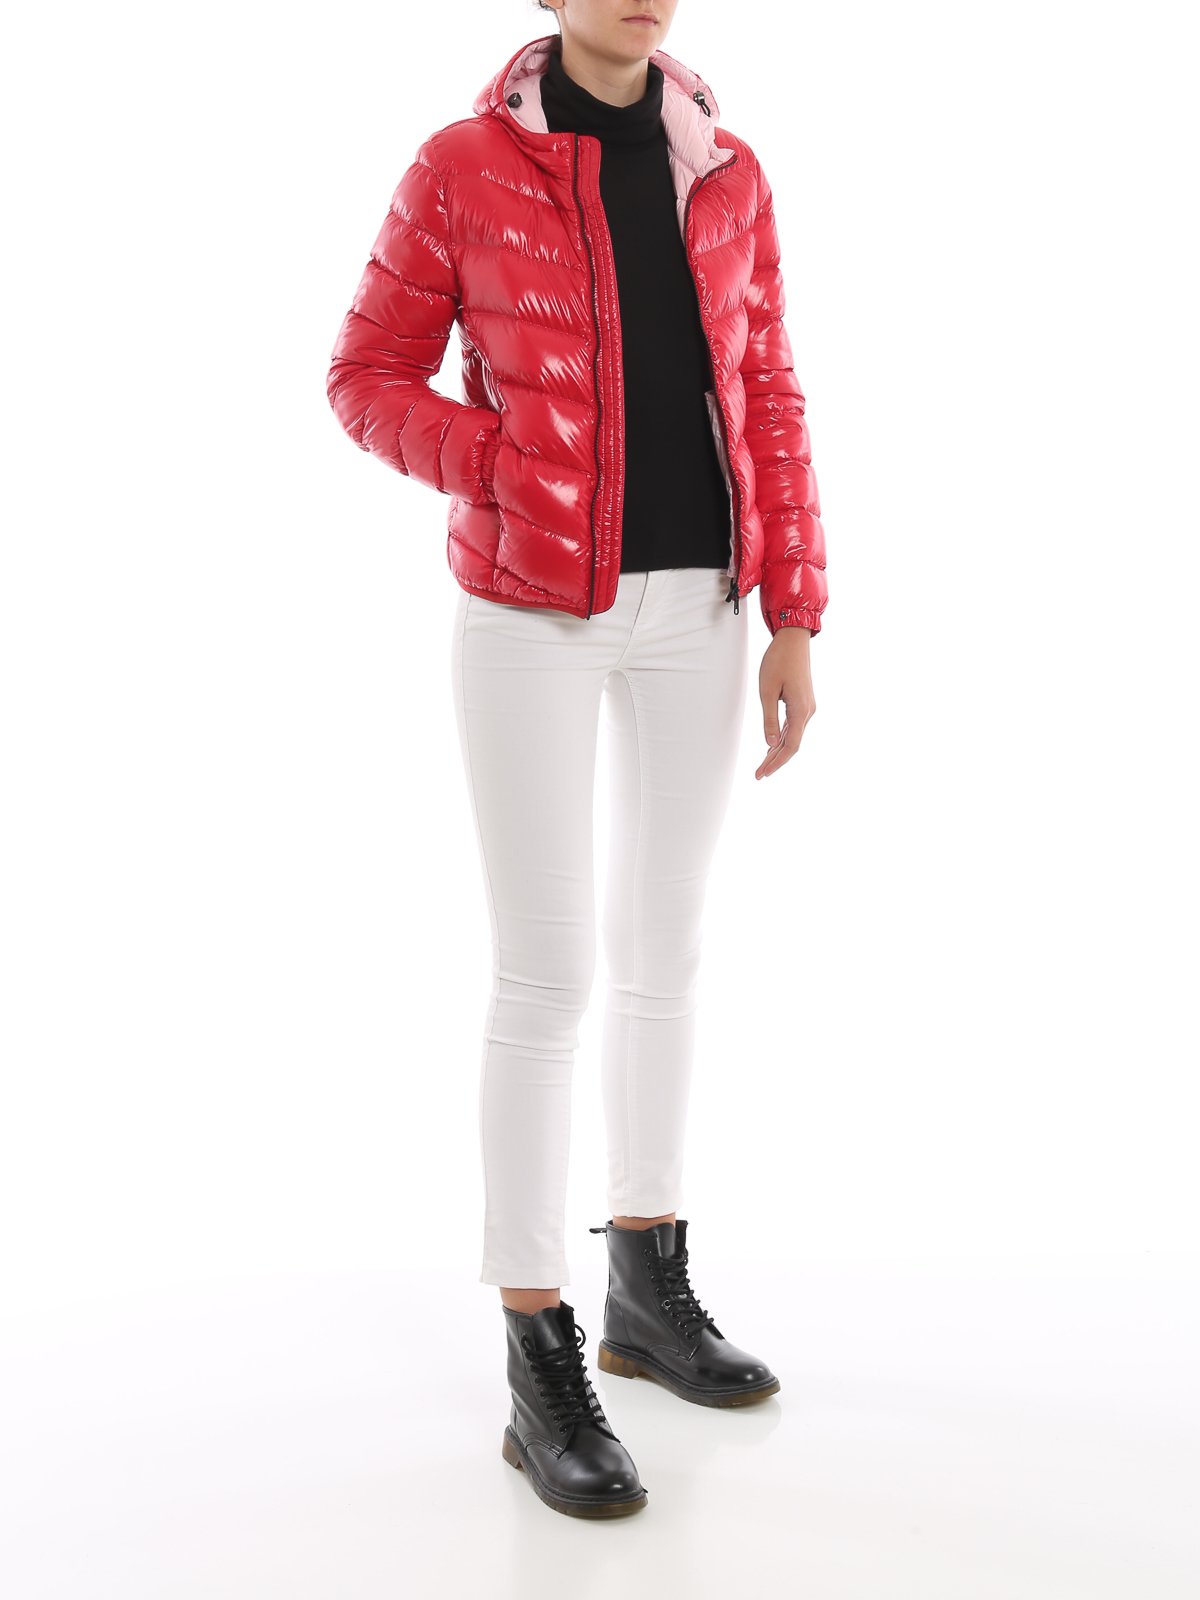 Colmar Originals Glossy red hooded puffer jacket padded